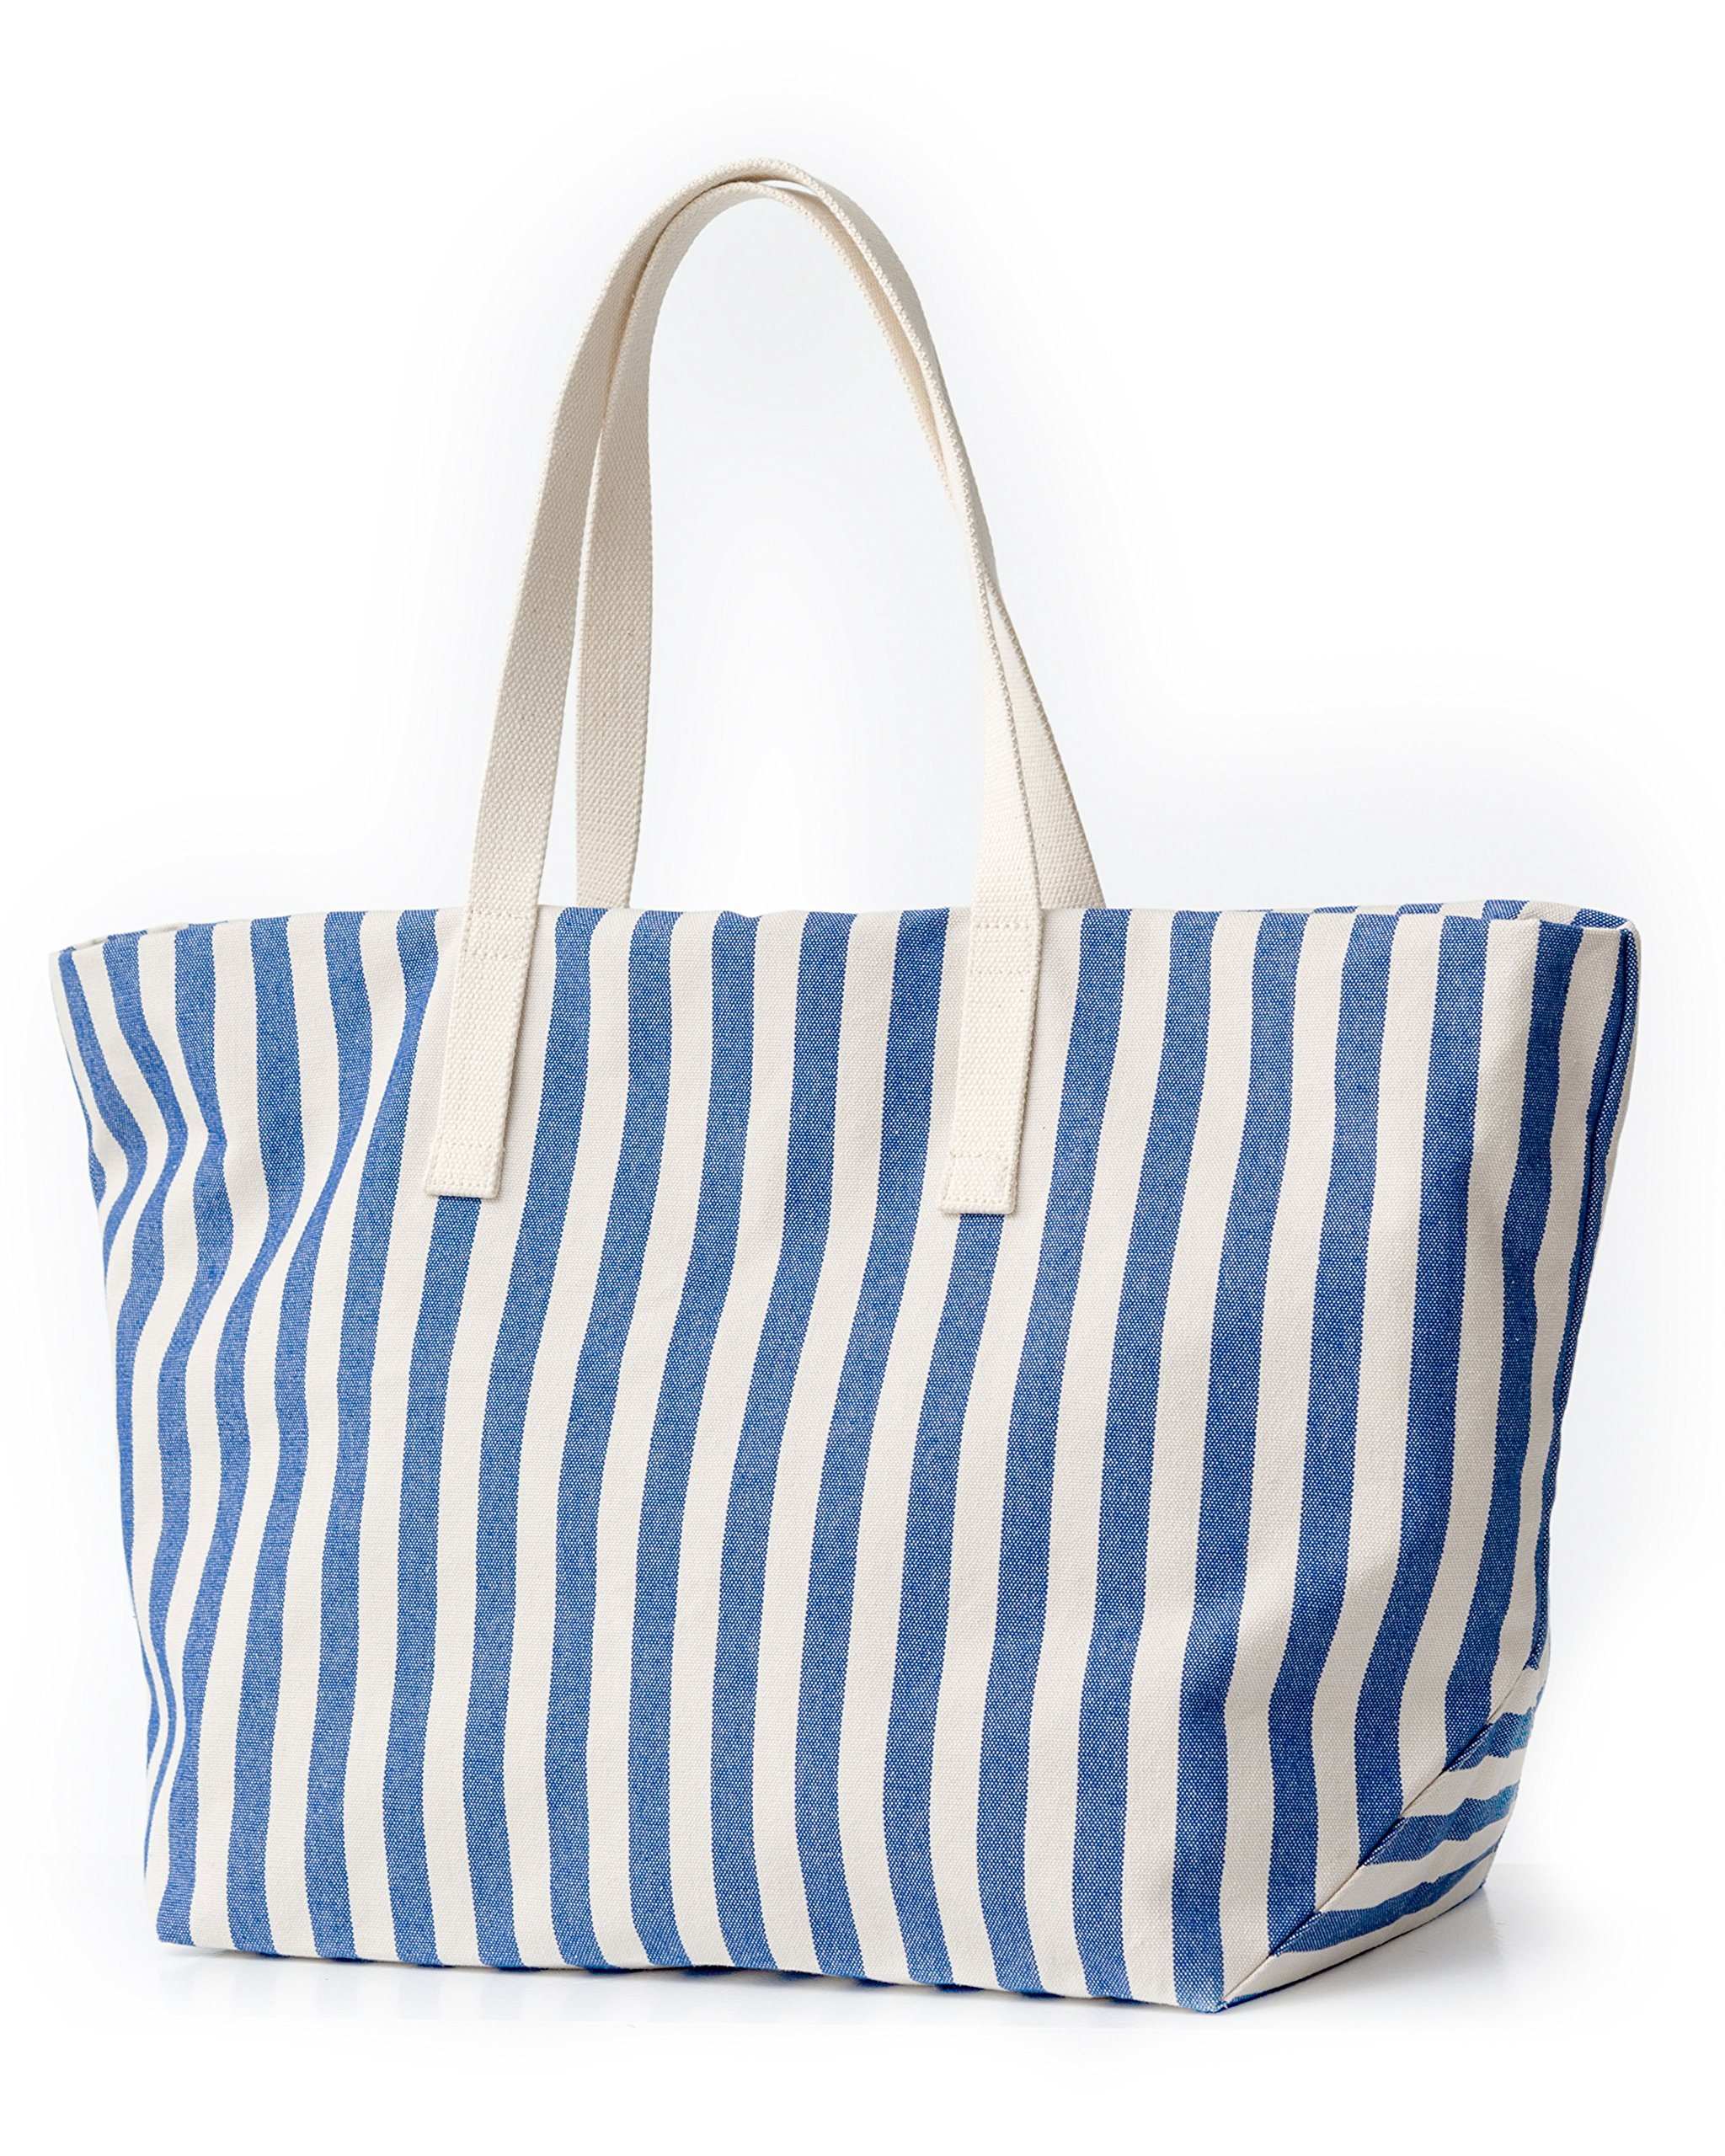 BAGGU Women's Weekend Bag, Roomy and Durable Canvas Carry-on Travel Tote, Summer Stripe